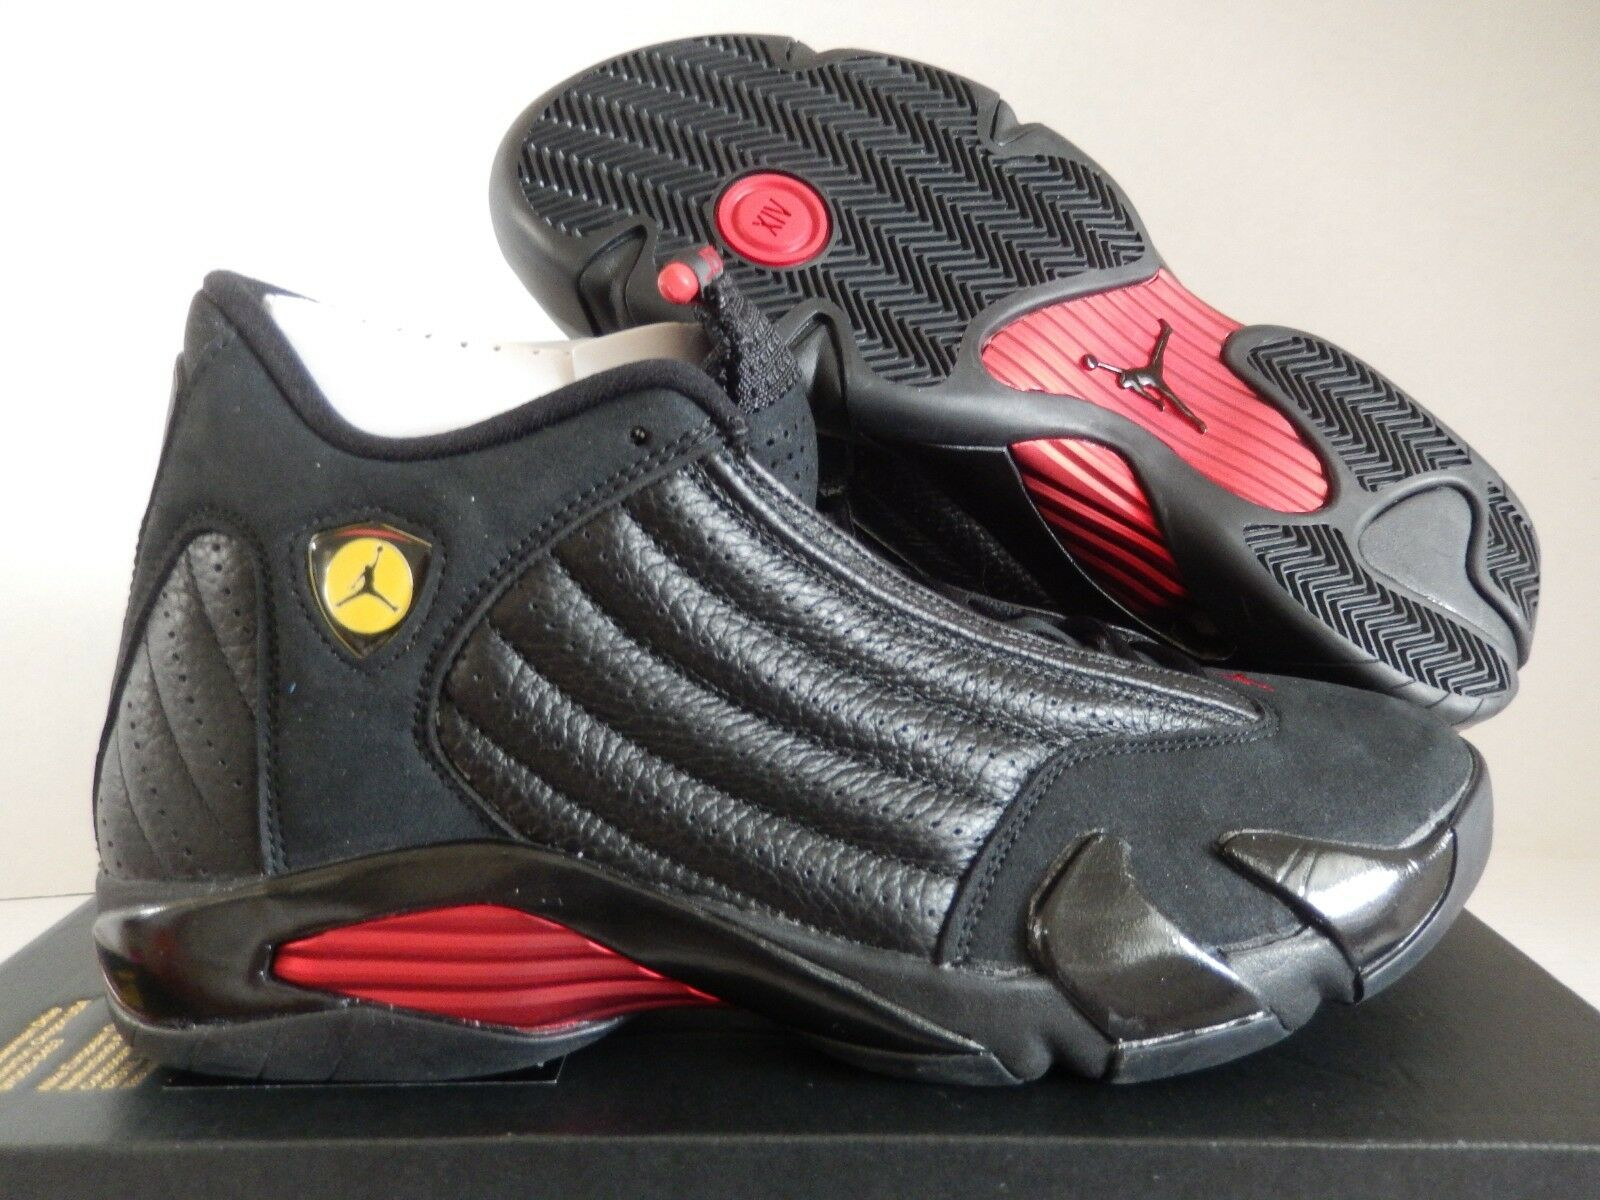 NIKE AIR JORDAN 14 RETRO BLACK-VARSITY RED-BLACK SZ 14 [487471-003]